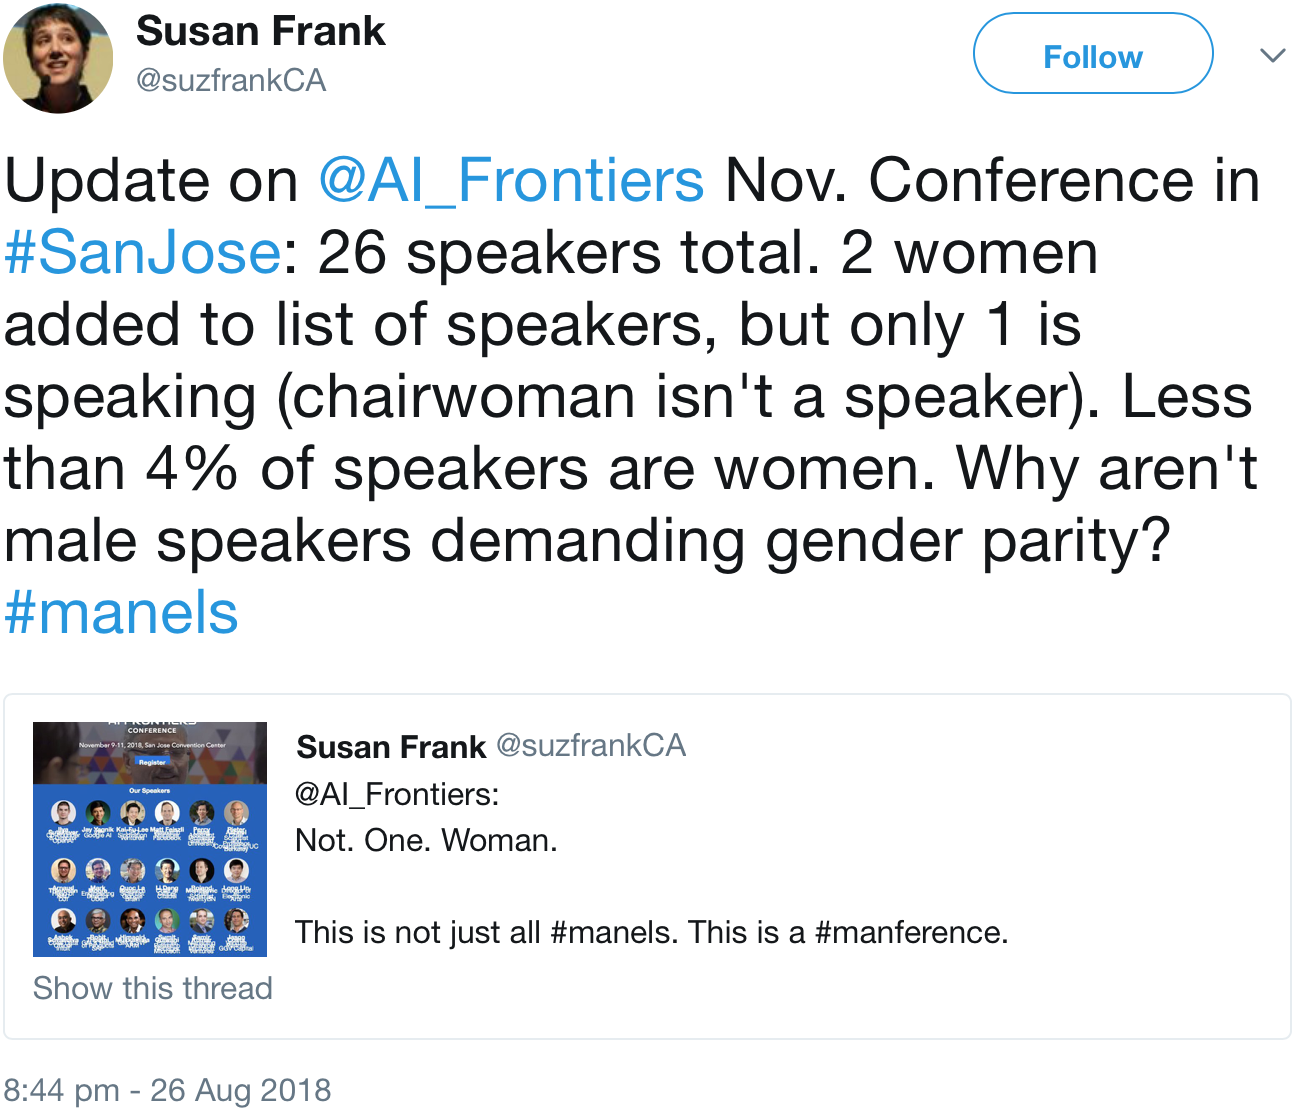 image of a tweet from Susan Frank (@suzfrankCA)